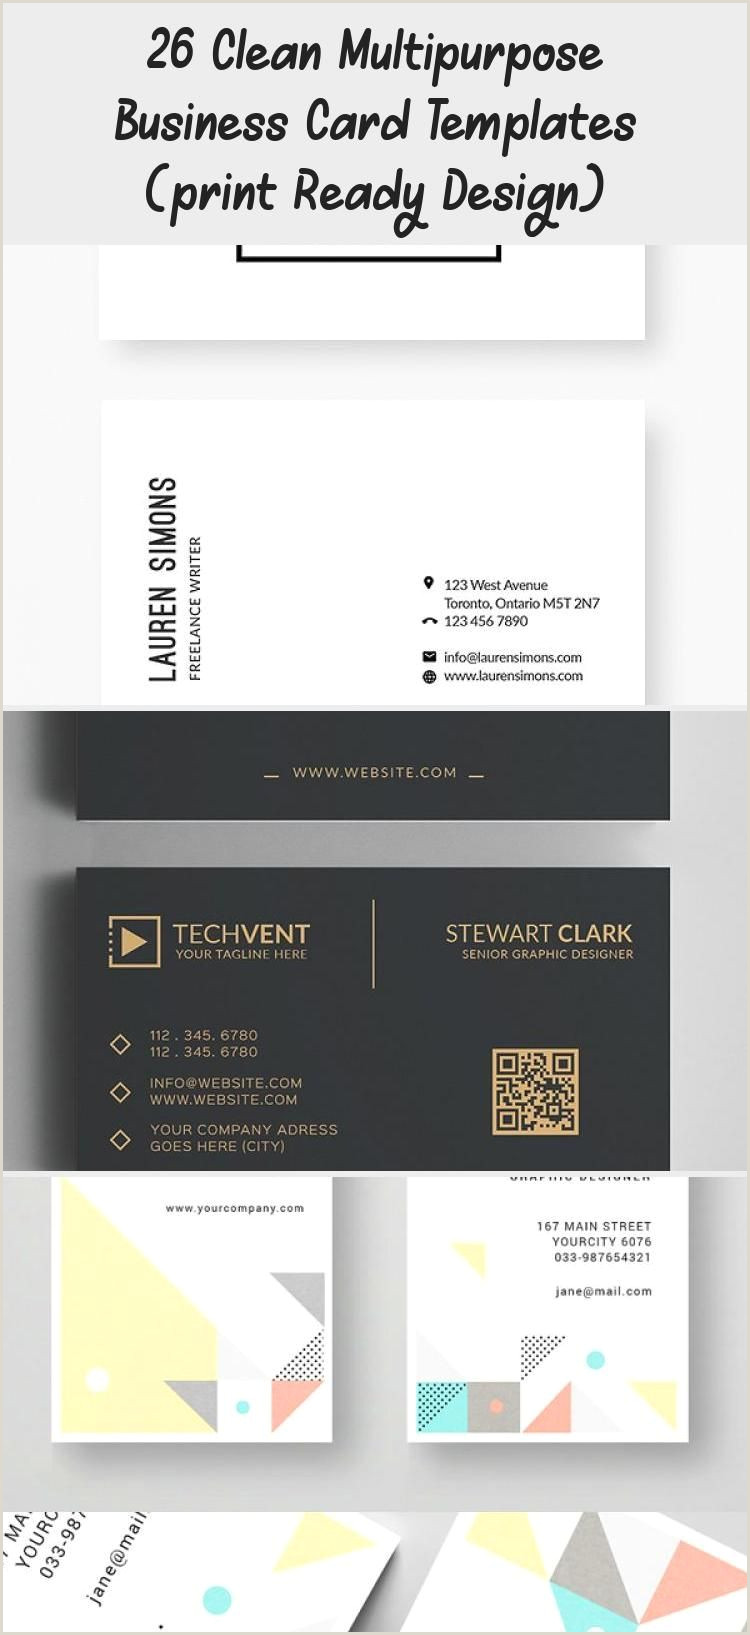 Information Business Card 26 Clean Multipurpose Business Card Templates Print Ready